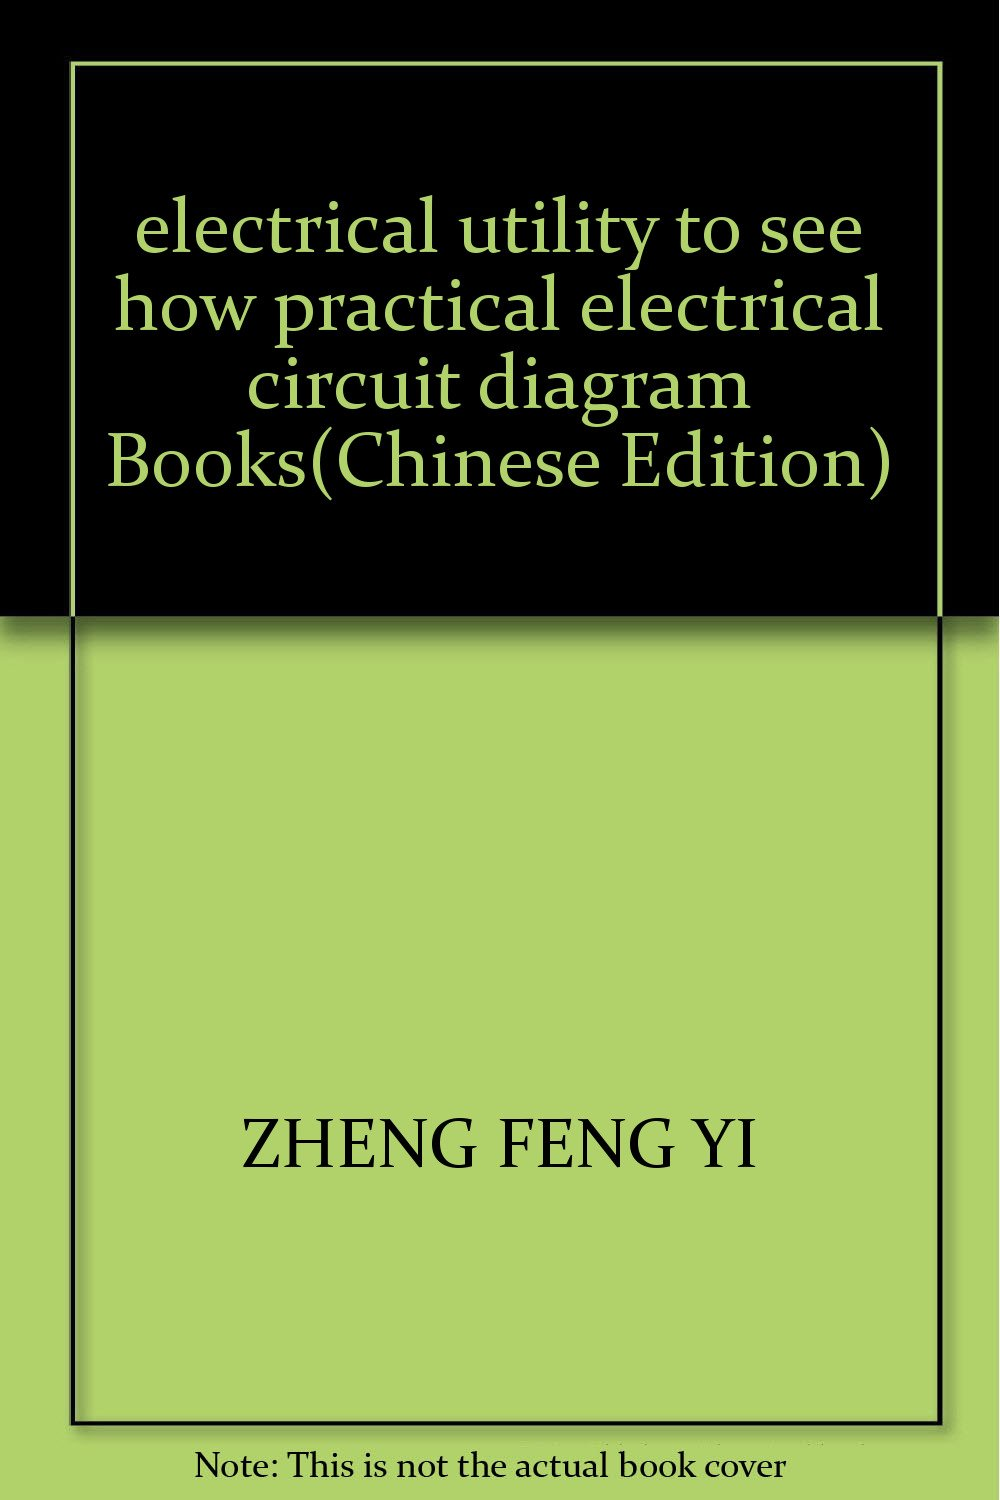 electrical utility to see how practical electrical circuit diagram books  paperback – june 1, 2003